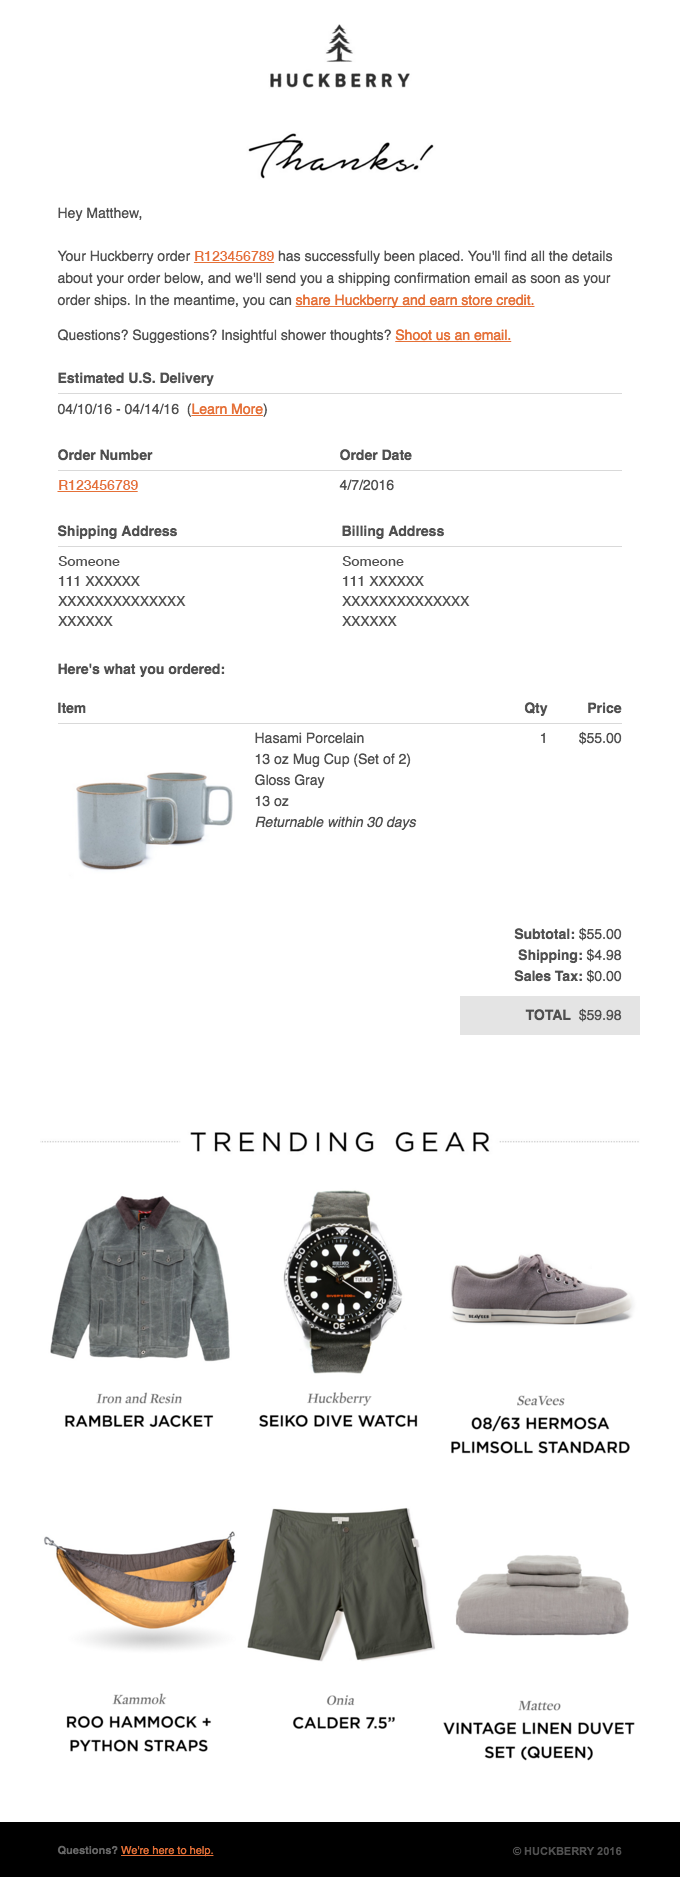 CAN-SPAM compliant Huckberry transactional email with promotion